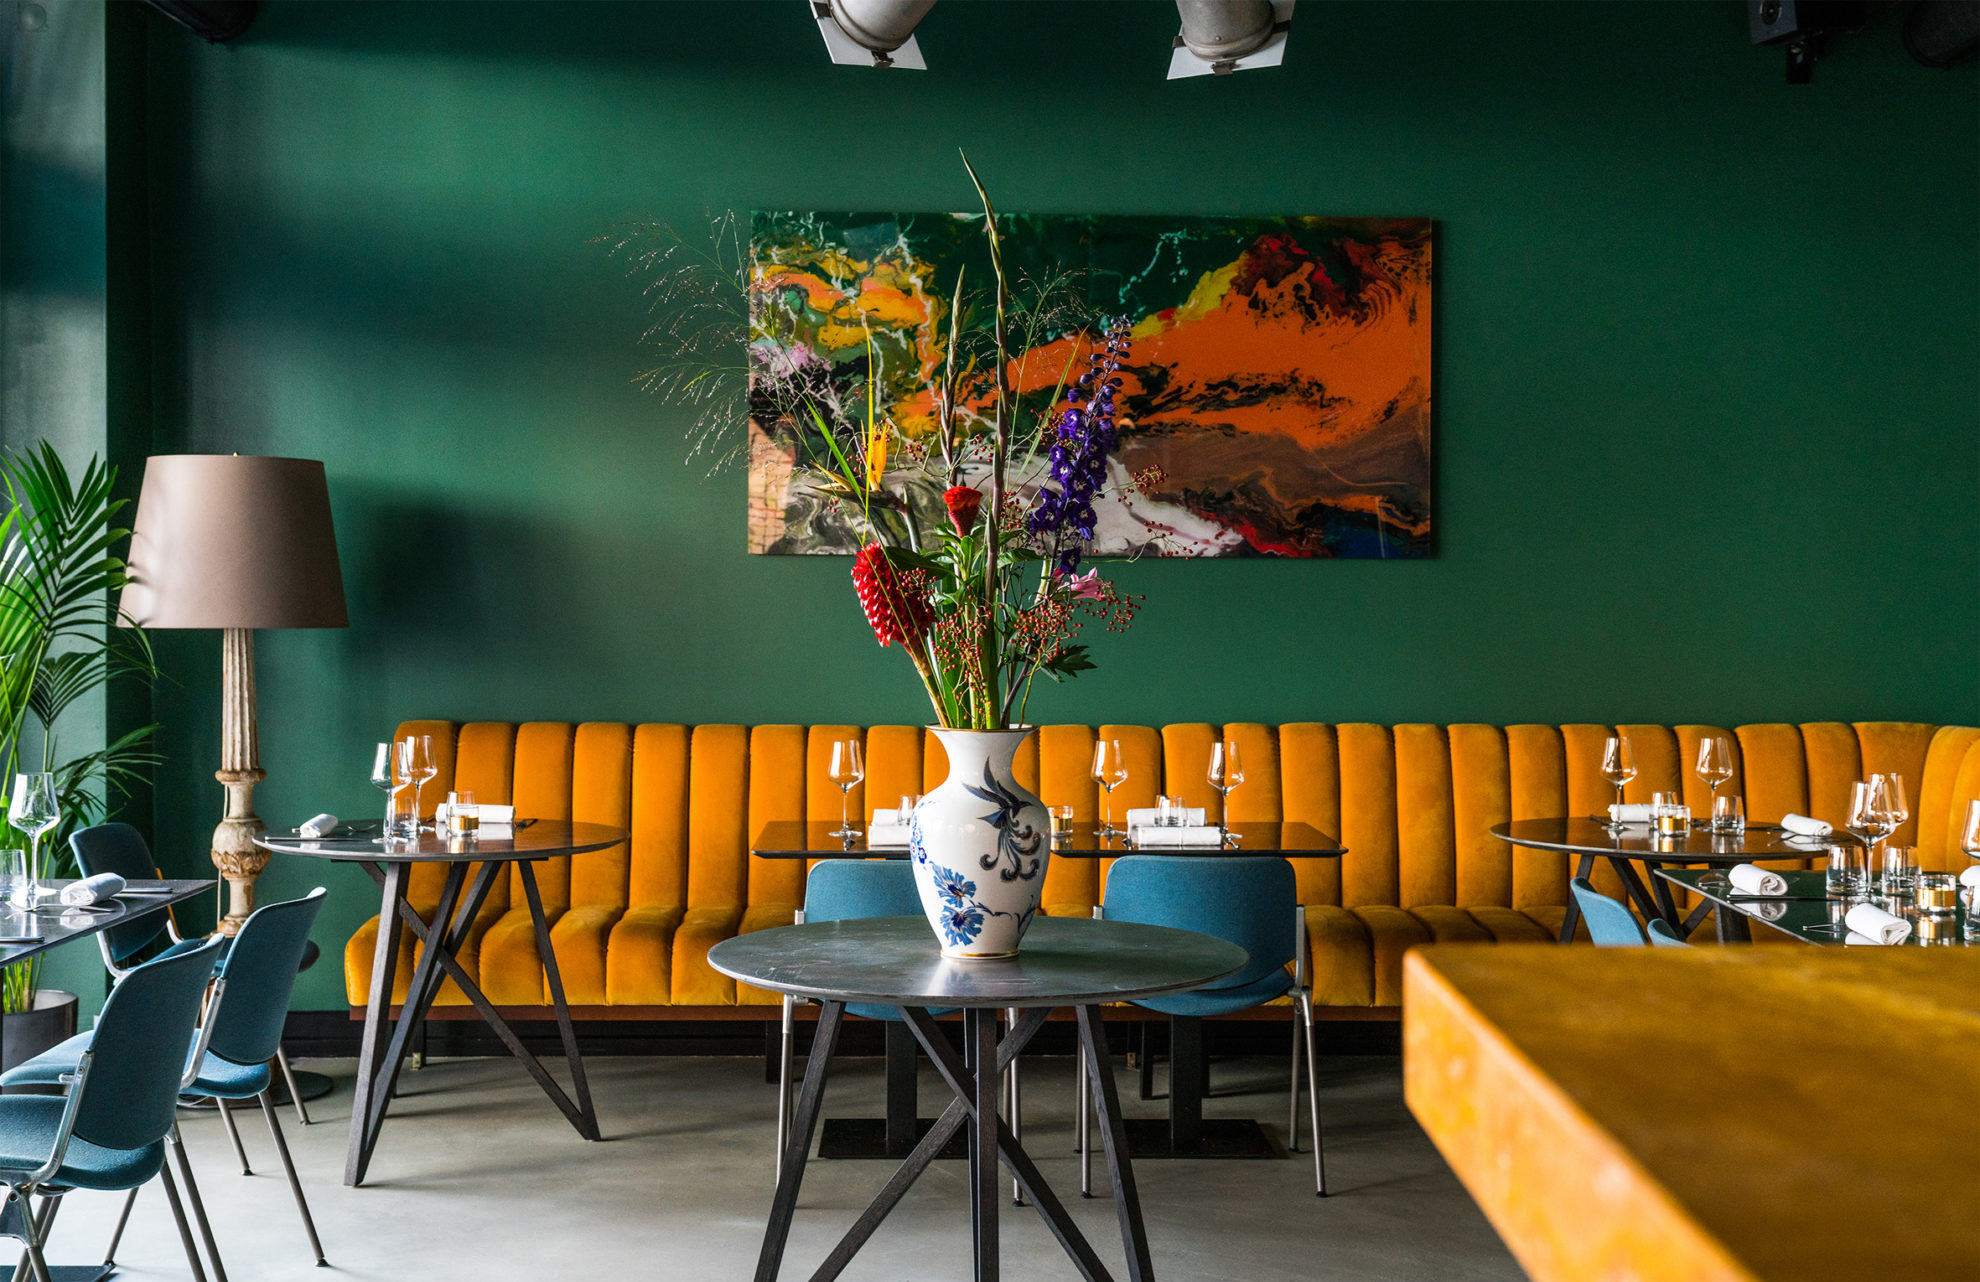 To The Bone restaurant in Berlin is awash with colour